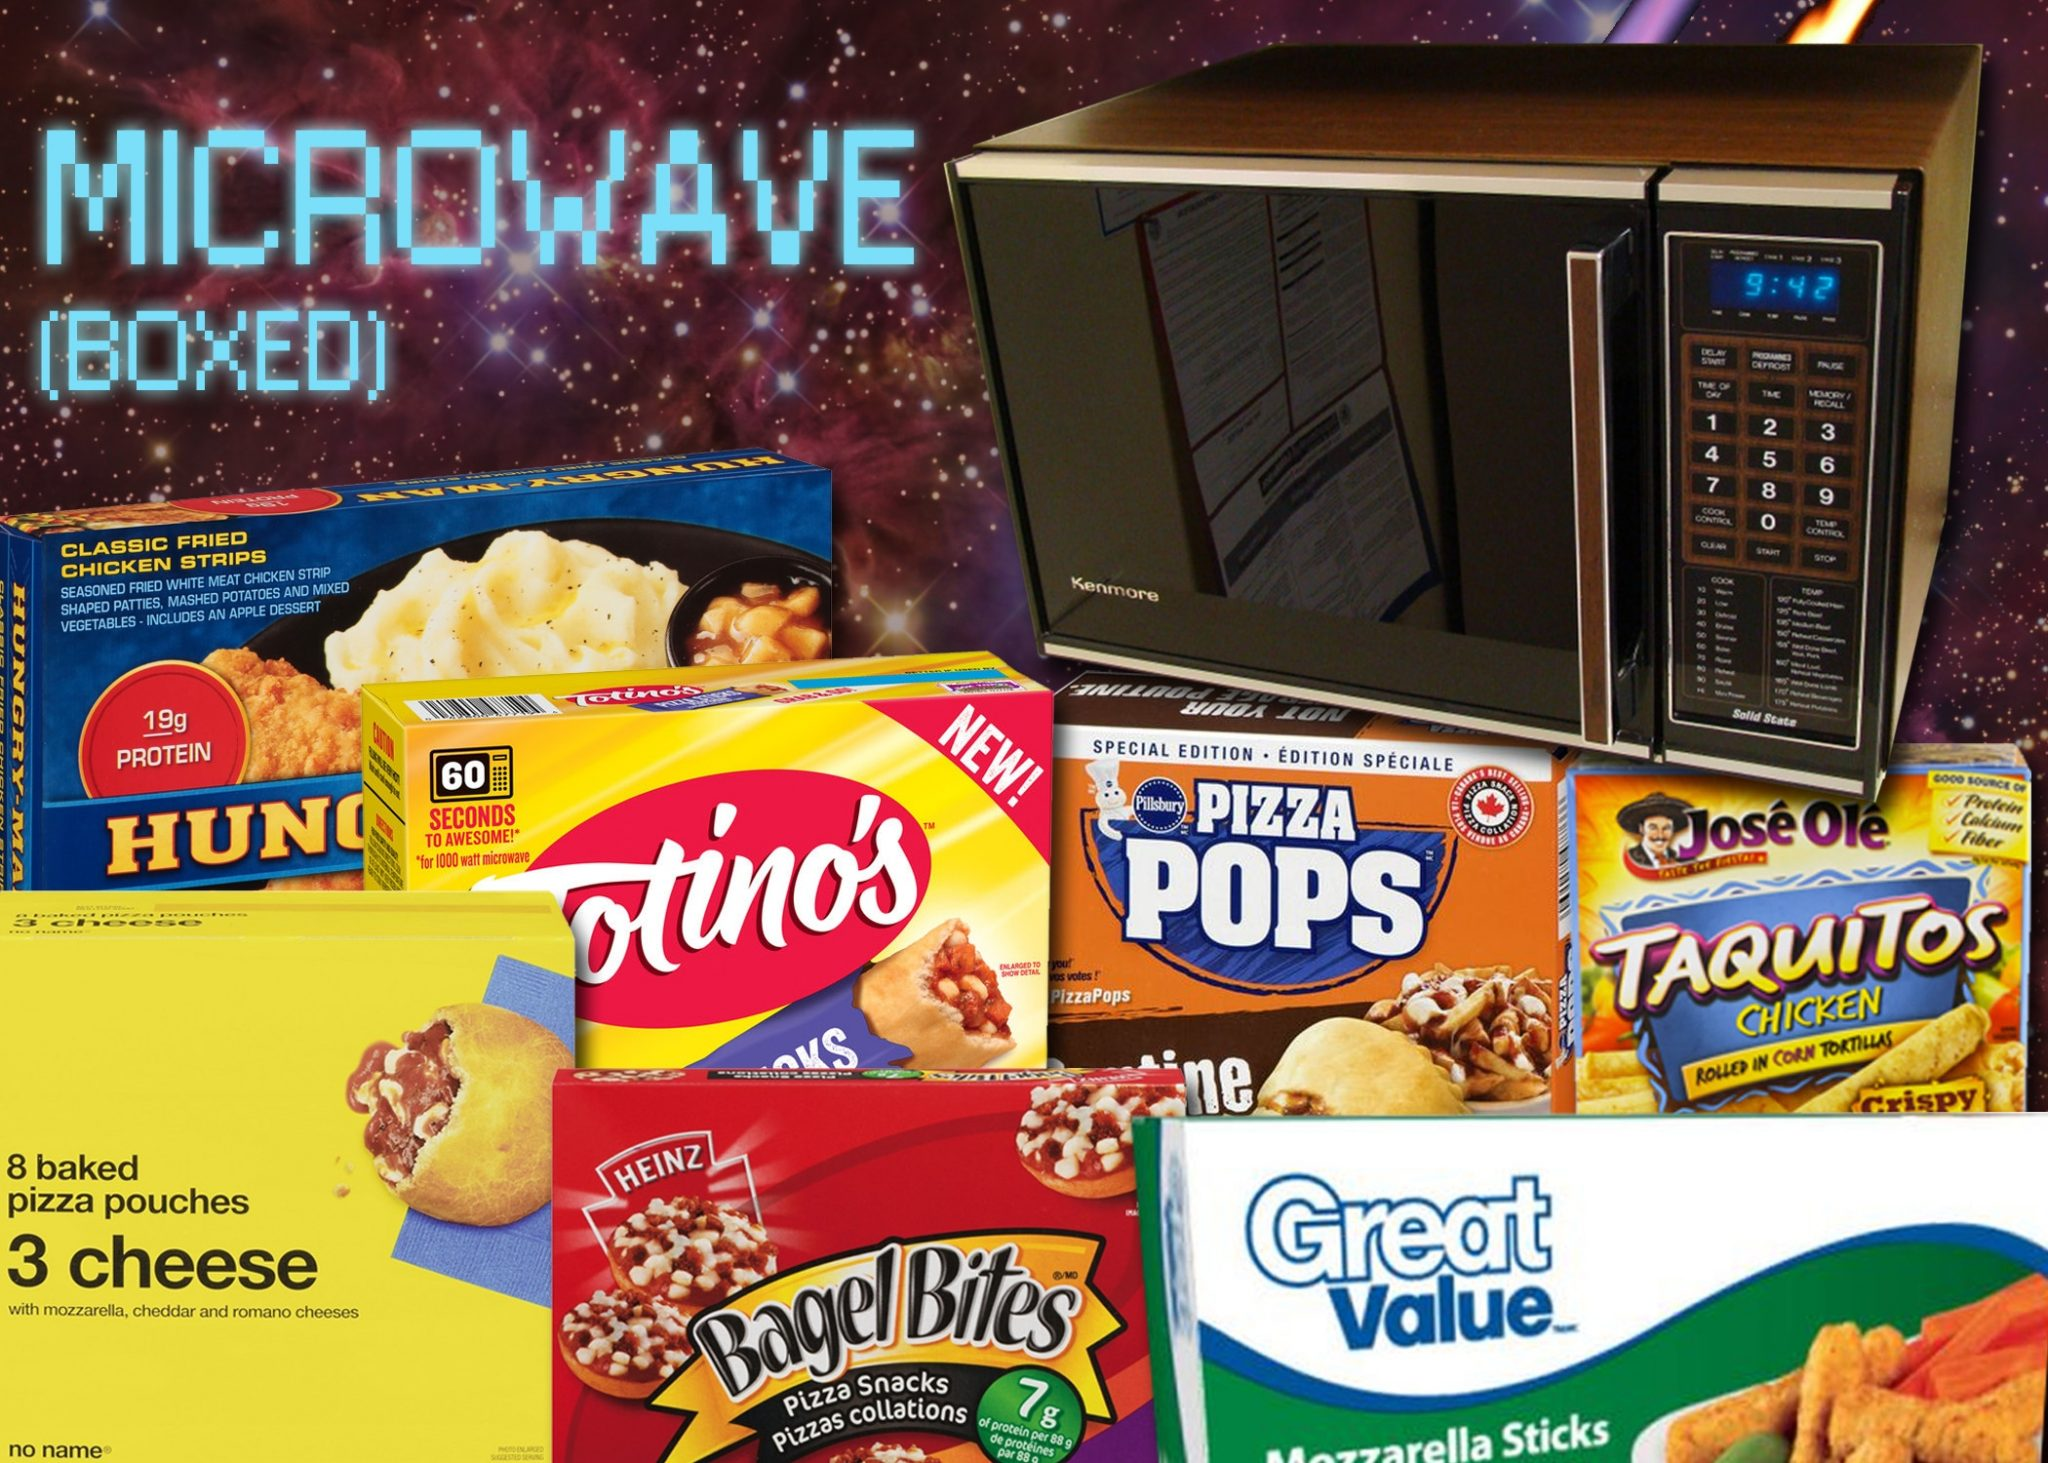 Is it coincidence that so many boxed microwave foods are pizza-related? (spoiler alter: no!)